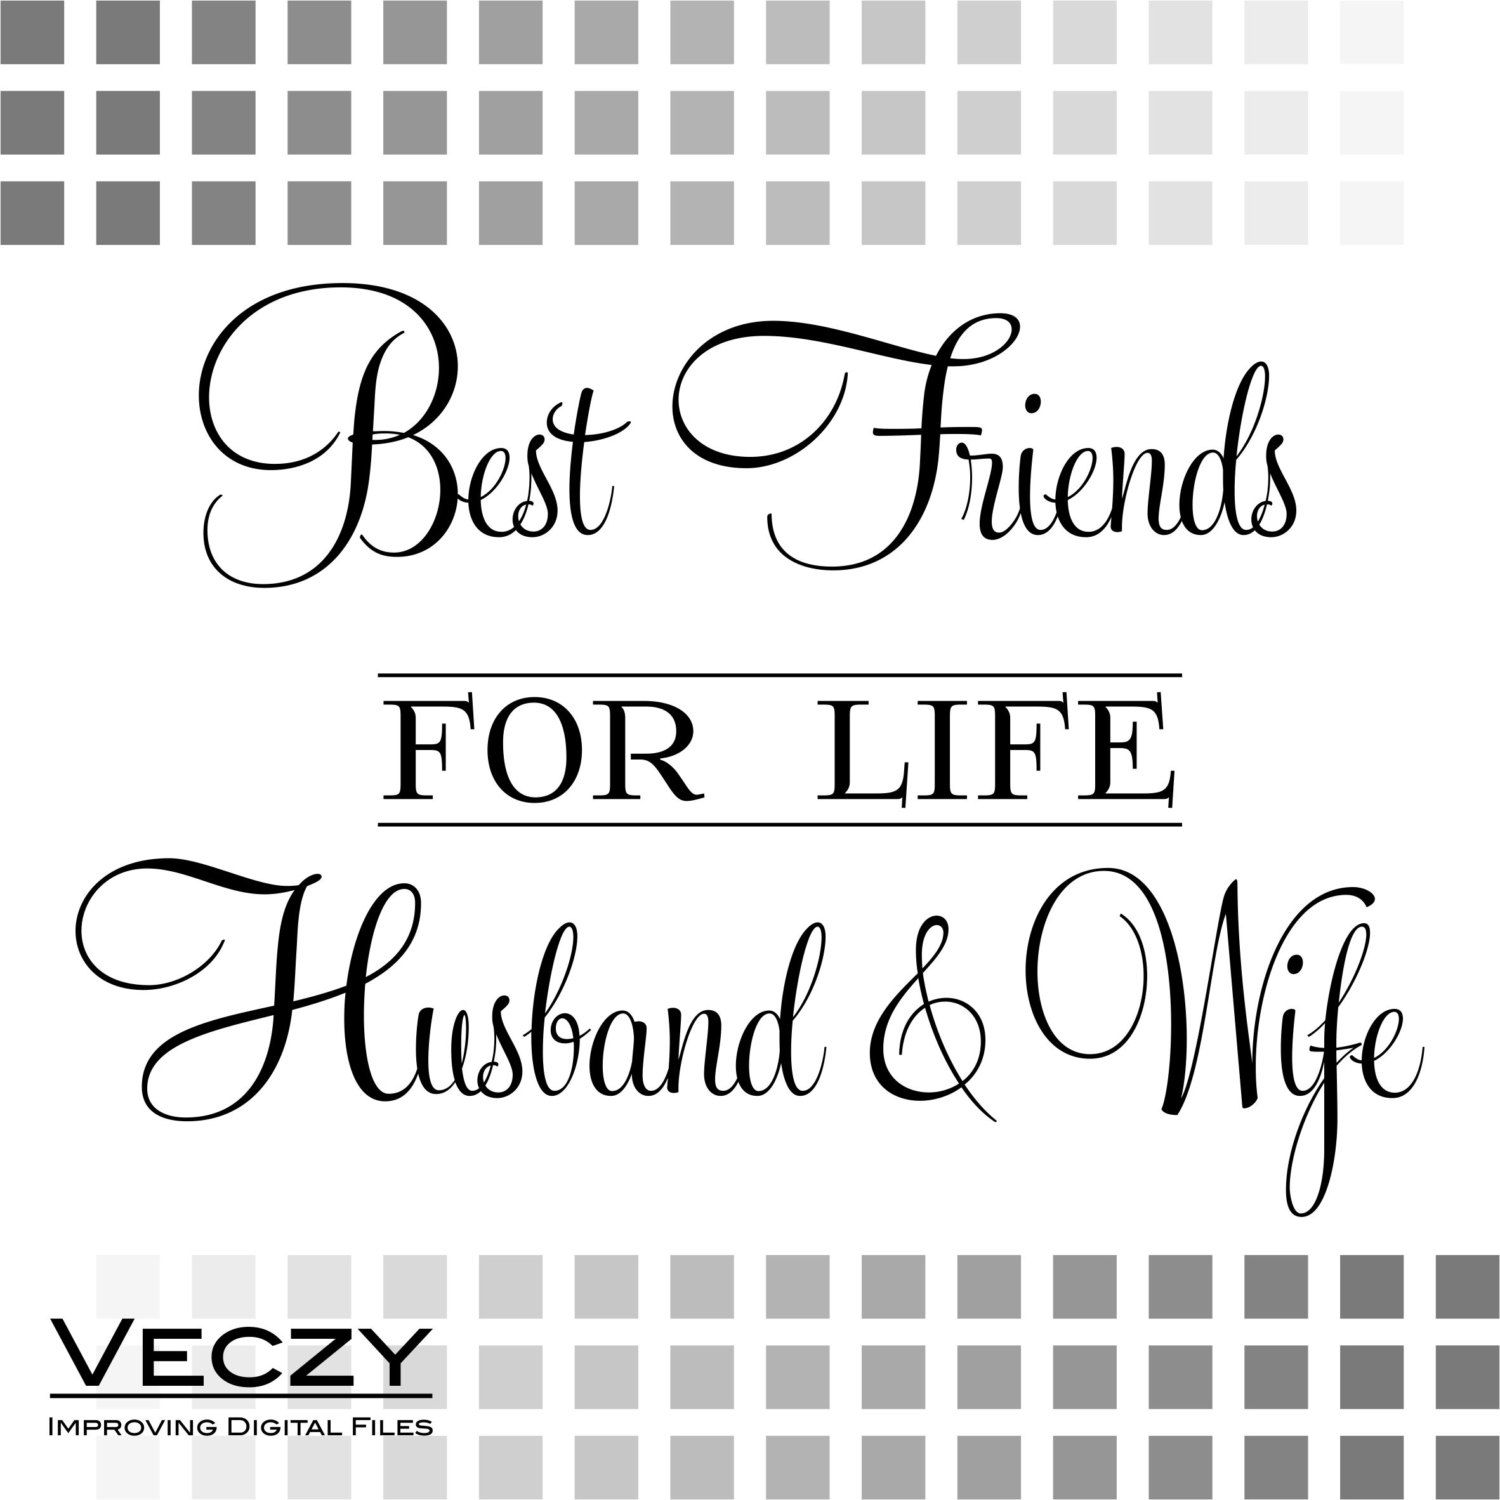 Svg Quotes Best Friends For Life Husband Wife Svg Files Sayings Svg Files For Cricut Svg Files Sil Svg Quotes Best Friends For Life Inspirational Quotes